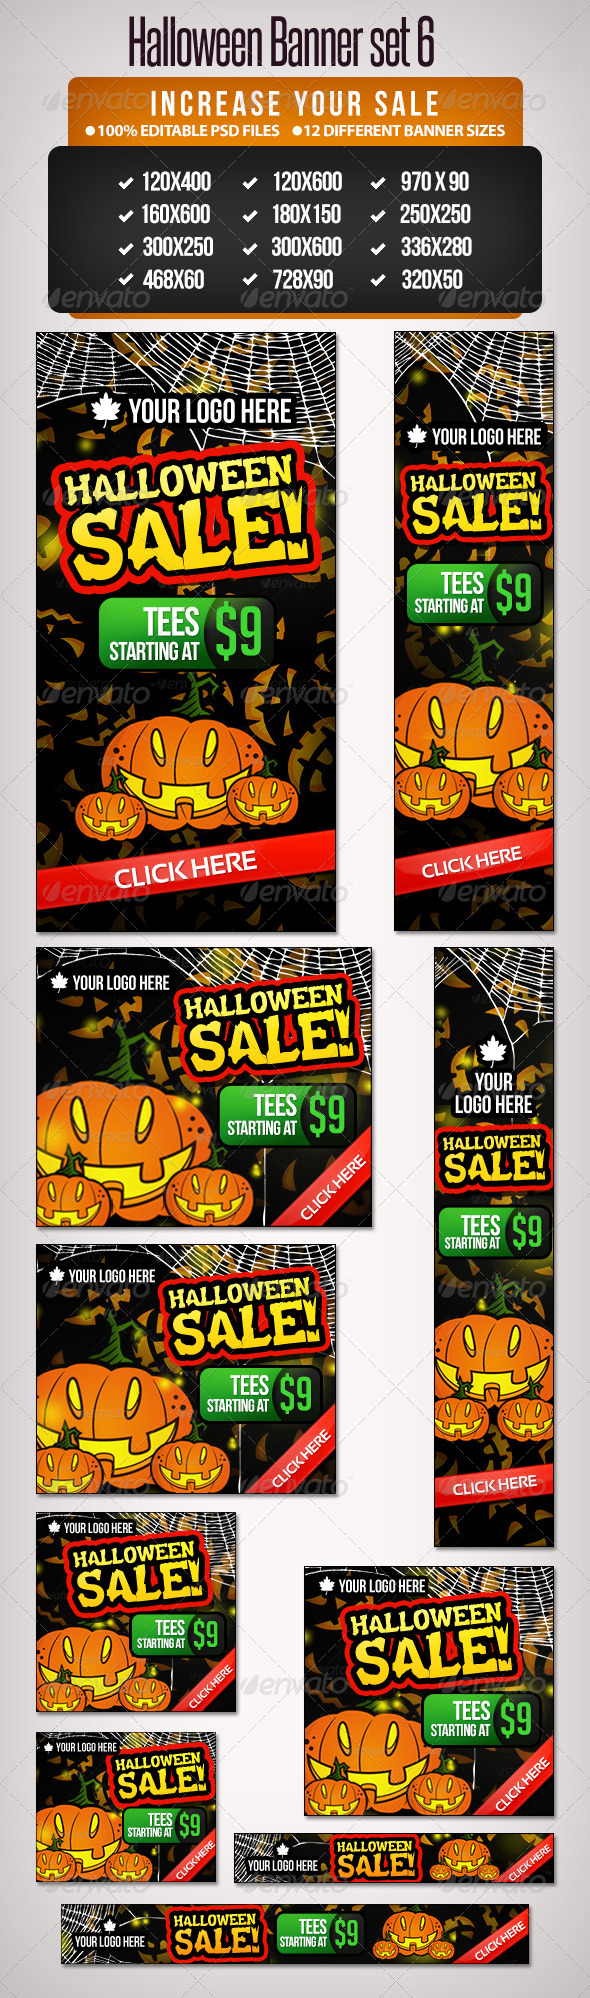 Halloween Banner Set 6 - 12 Google Standard Sizes - Banners & Ads Web Elements